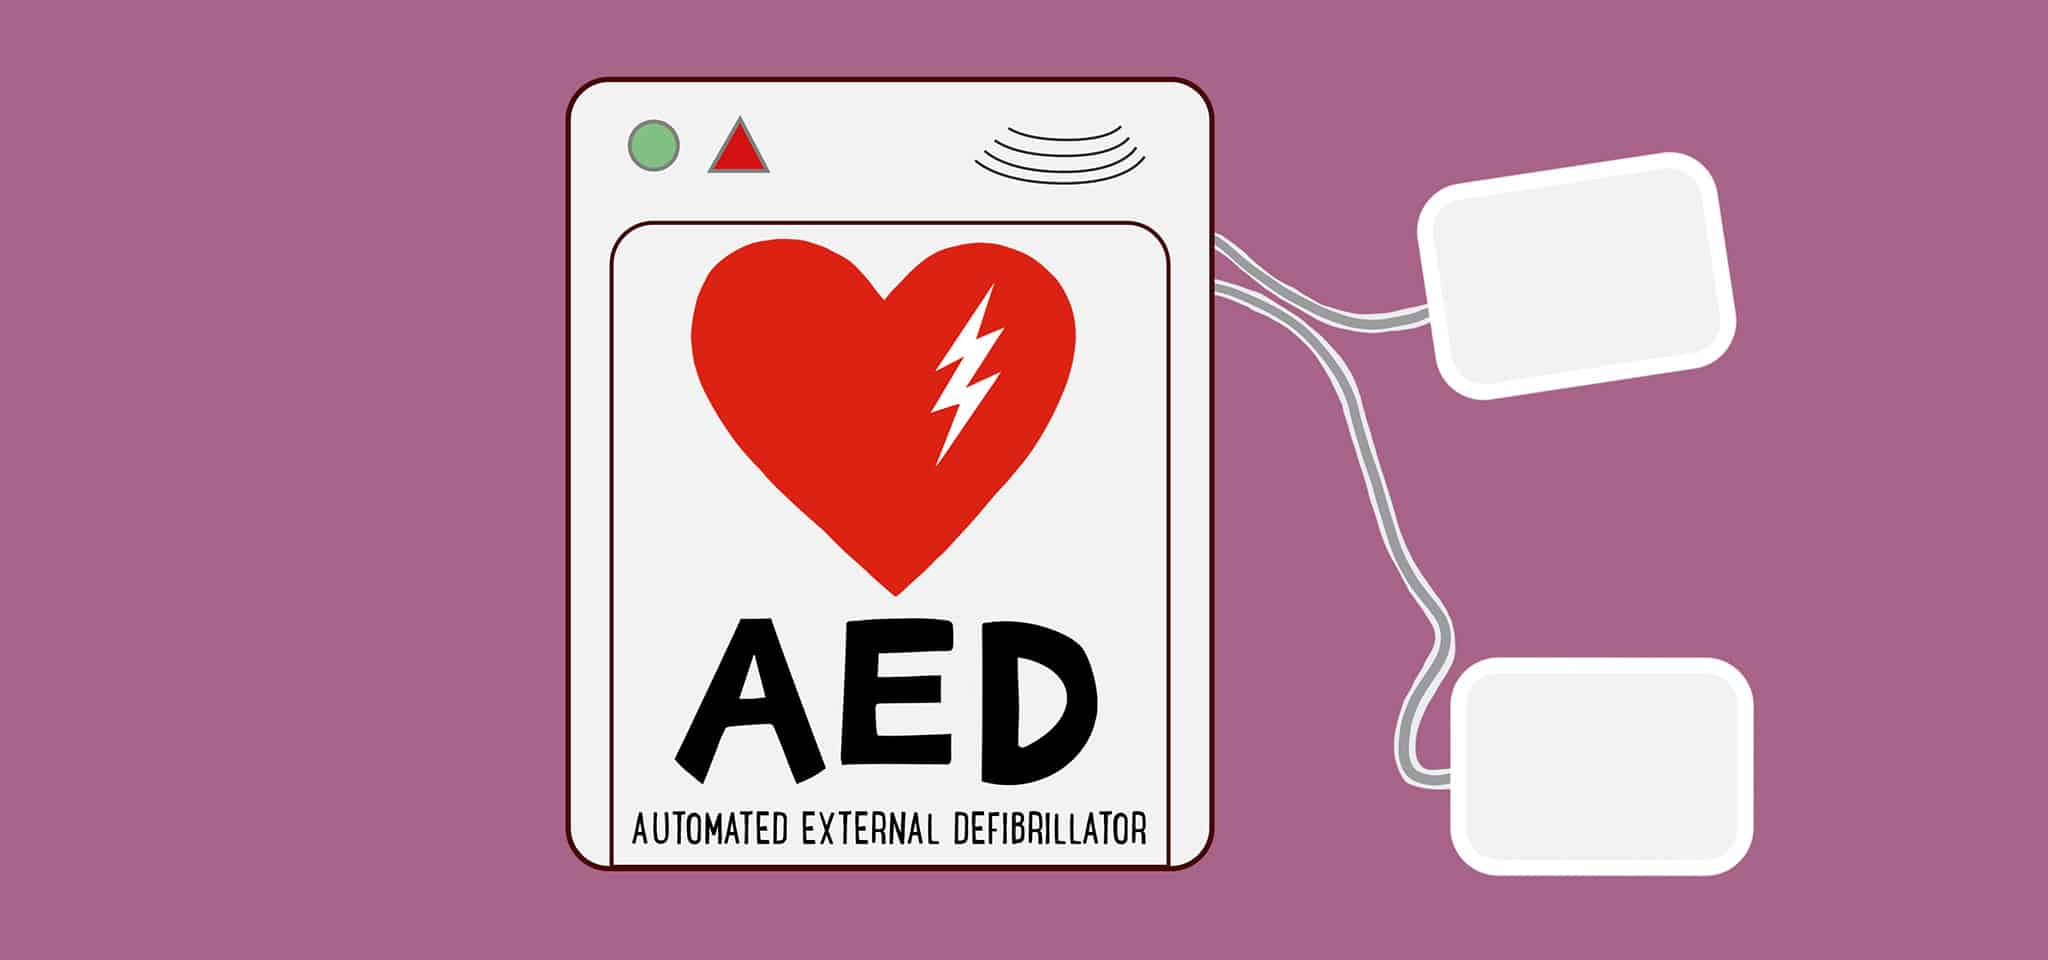 Be #FDNYSmart About the Lifesaving AED